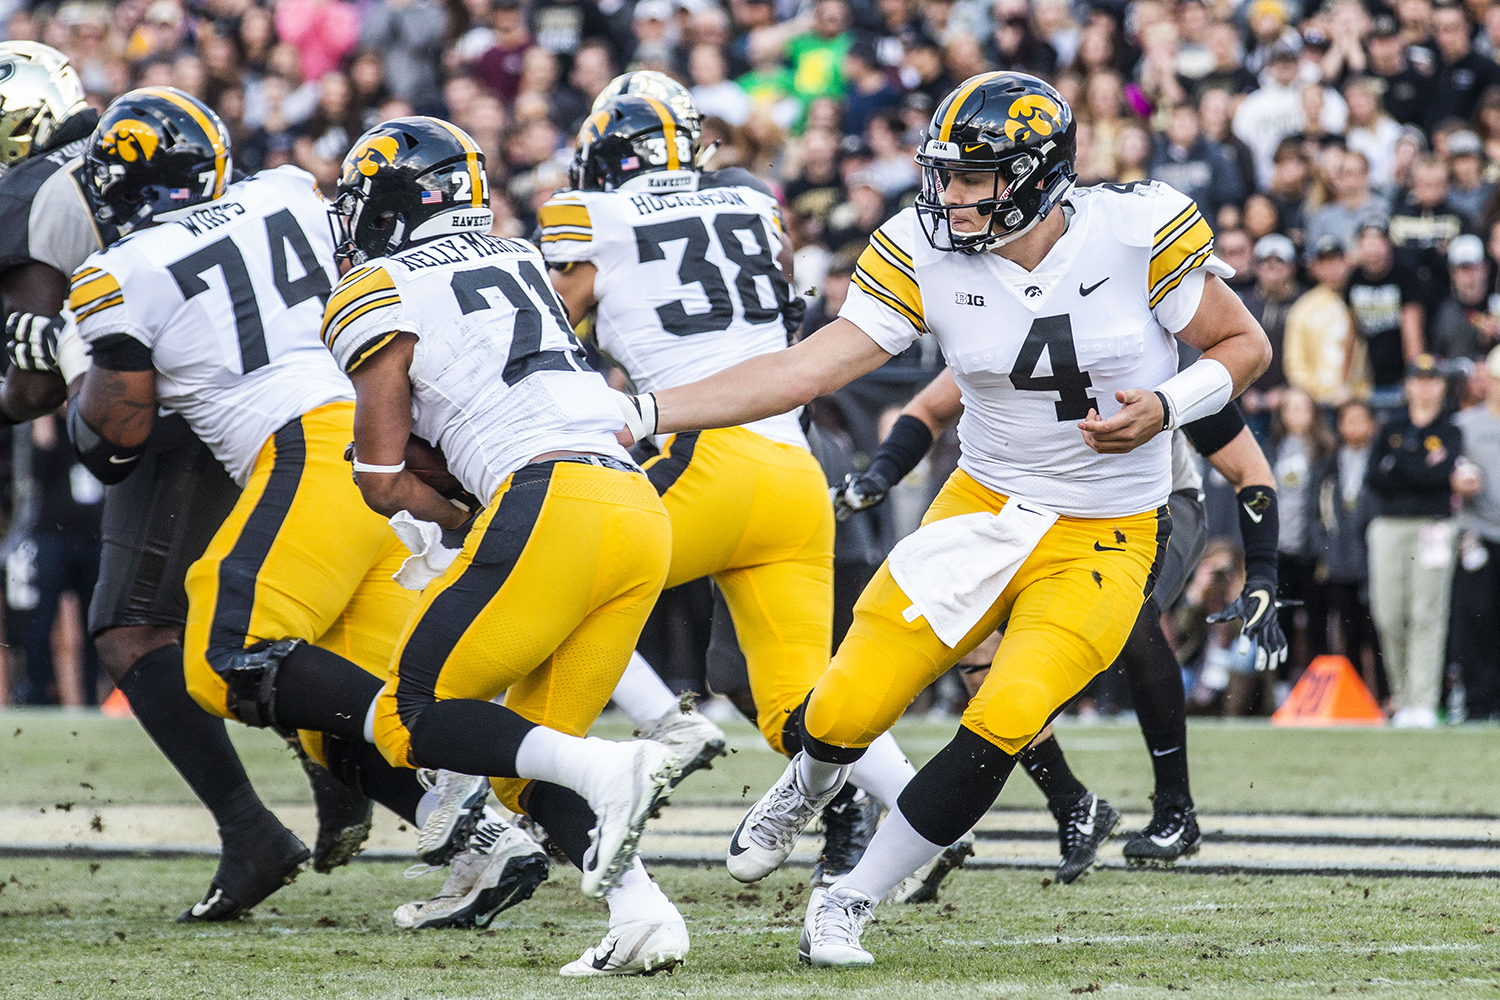 Iowa+quarterback+Nate+Stanley+hands+the+ball+off+to+Iowa+running+back+Ivory+Kelly-Martin+during+the+Iowa%2FPurdue+game+at+Ross-Ade+Stadium+in+West+Lafayette%2C+Ind.+on+Saturday%2C+November+3%2C+2018.+The+Boilermakers+defeated+the+Hawkeyes+38-36.+